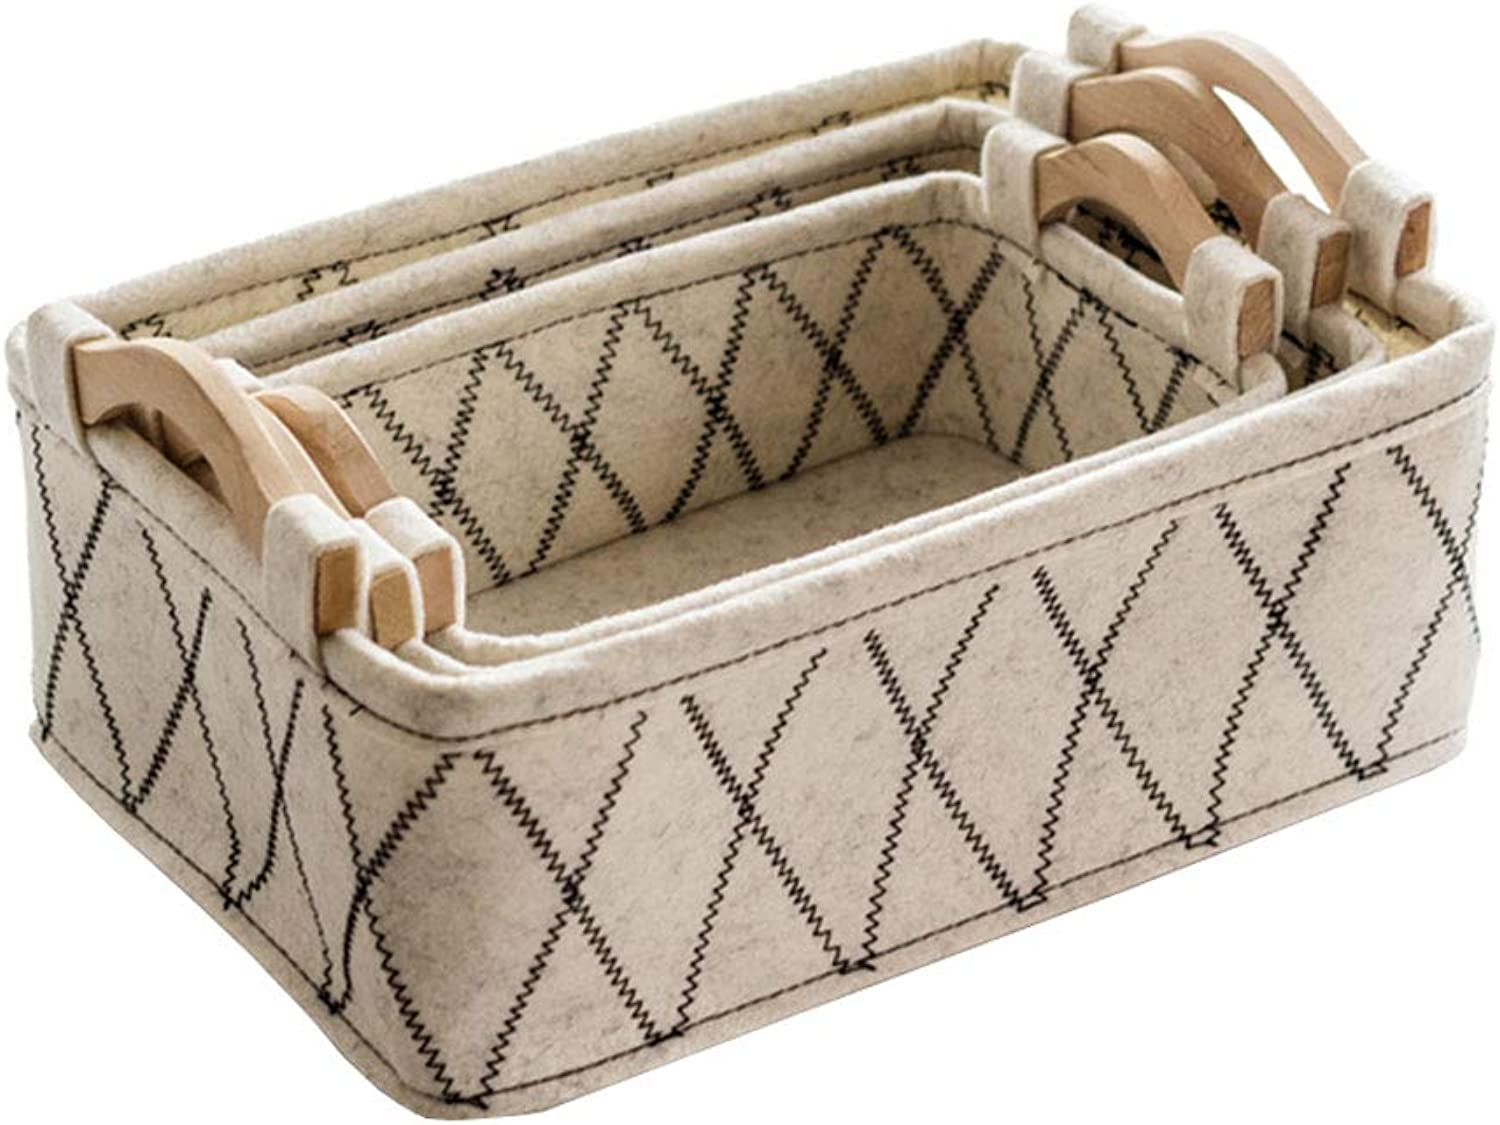 3-Piece Set Storage Basket with Handle Sundries Finishing Organize Box for Home Office Bedroom(37.5  26.5  17.5cm) (color    2)